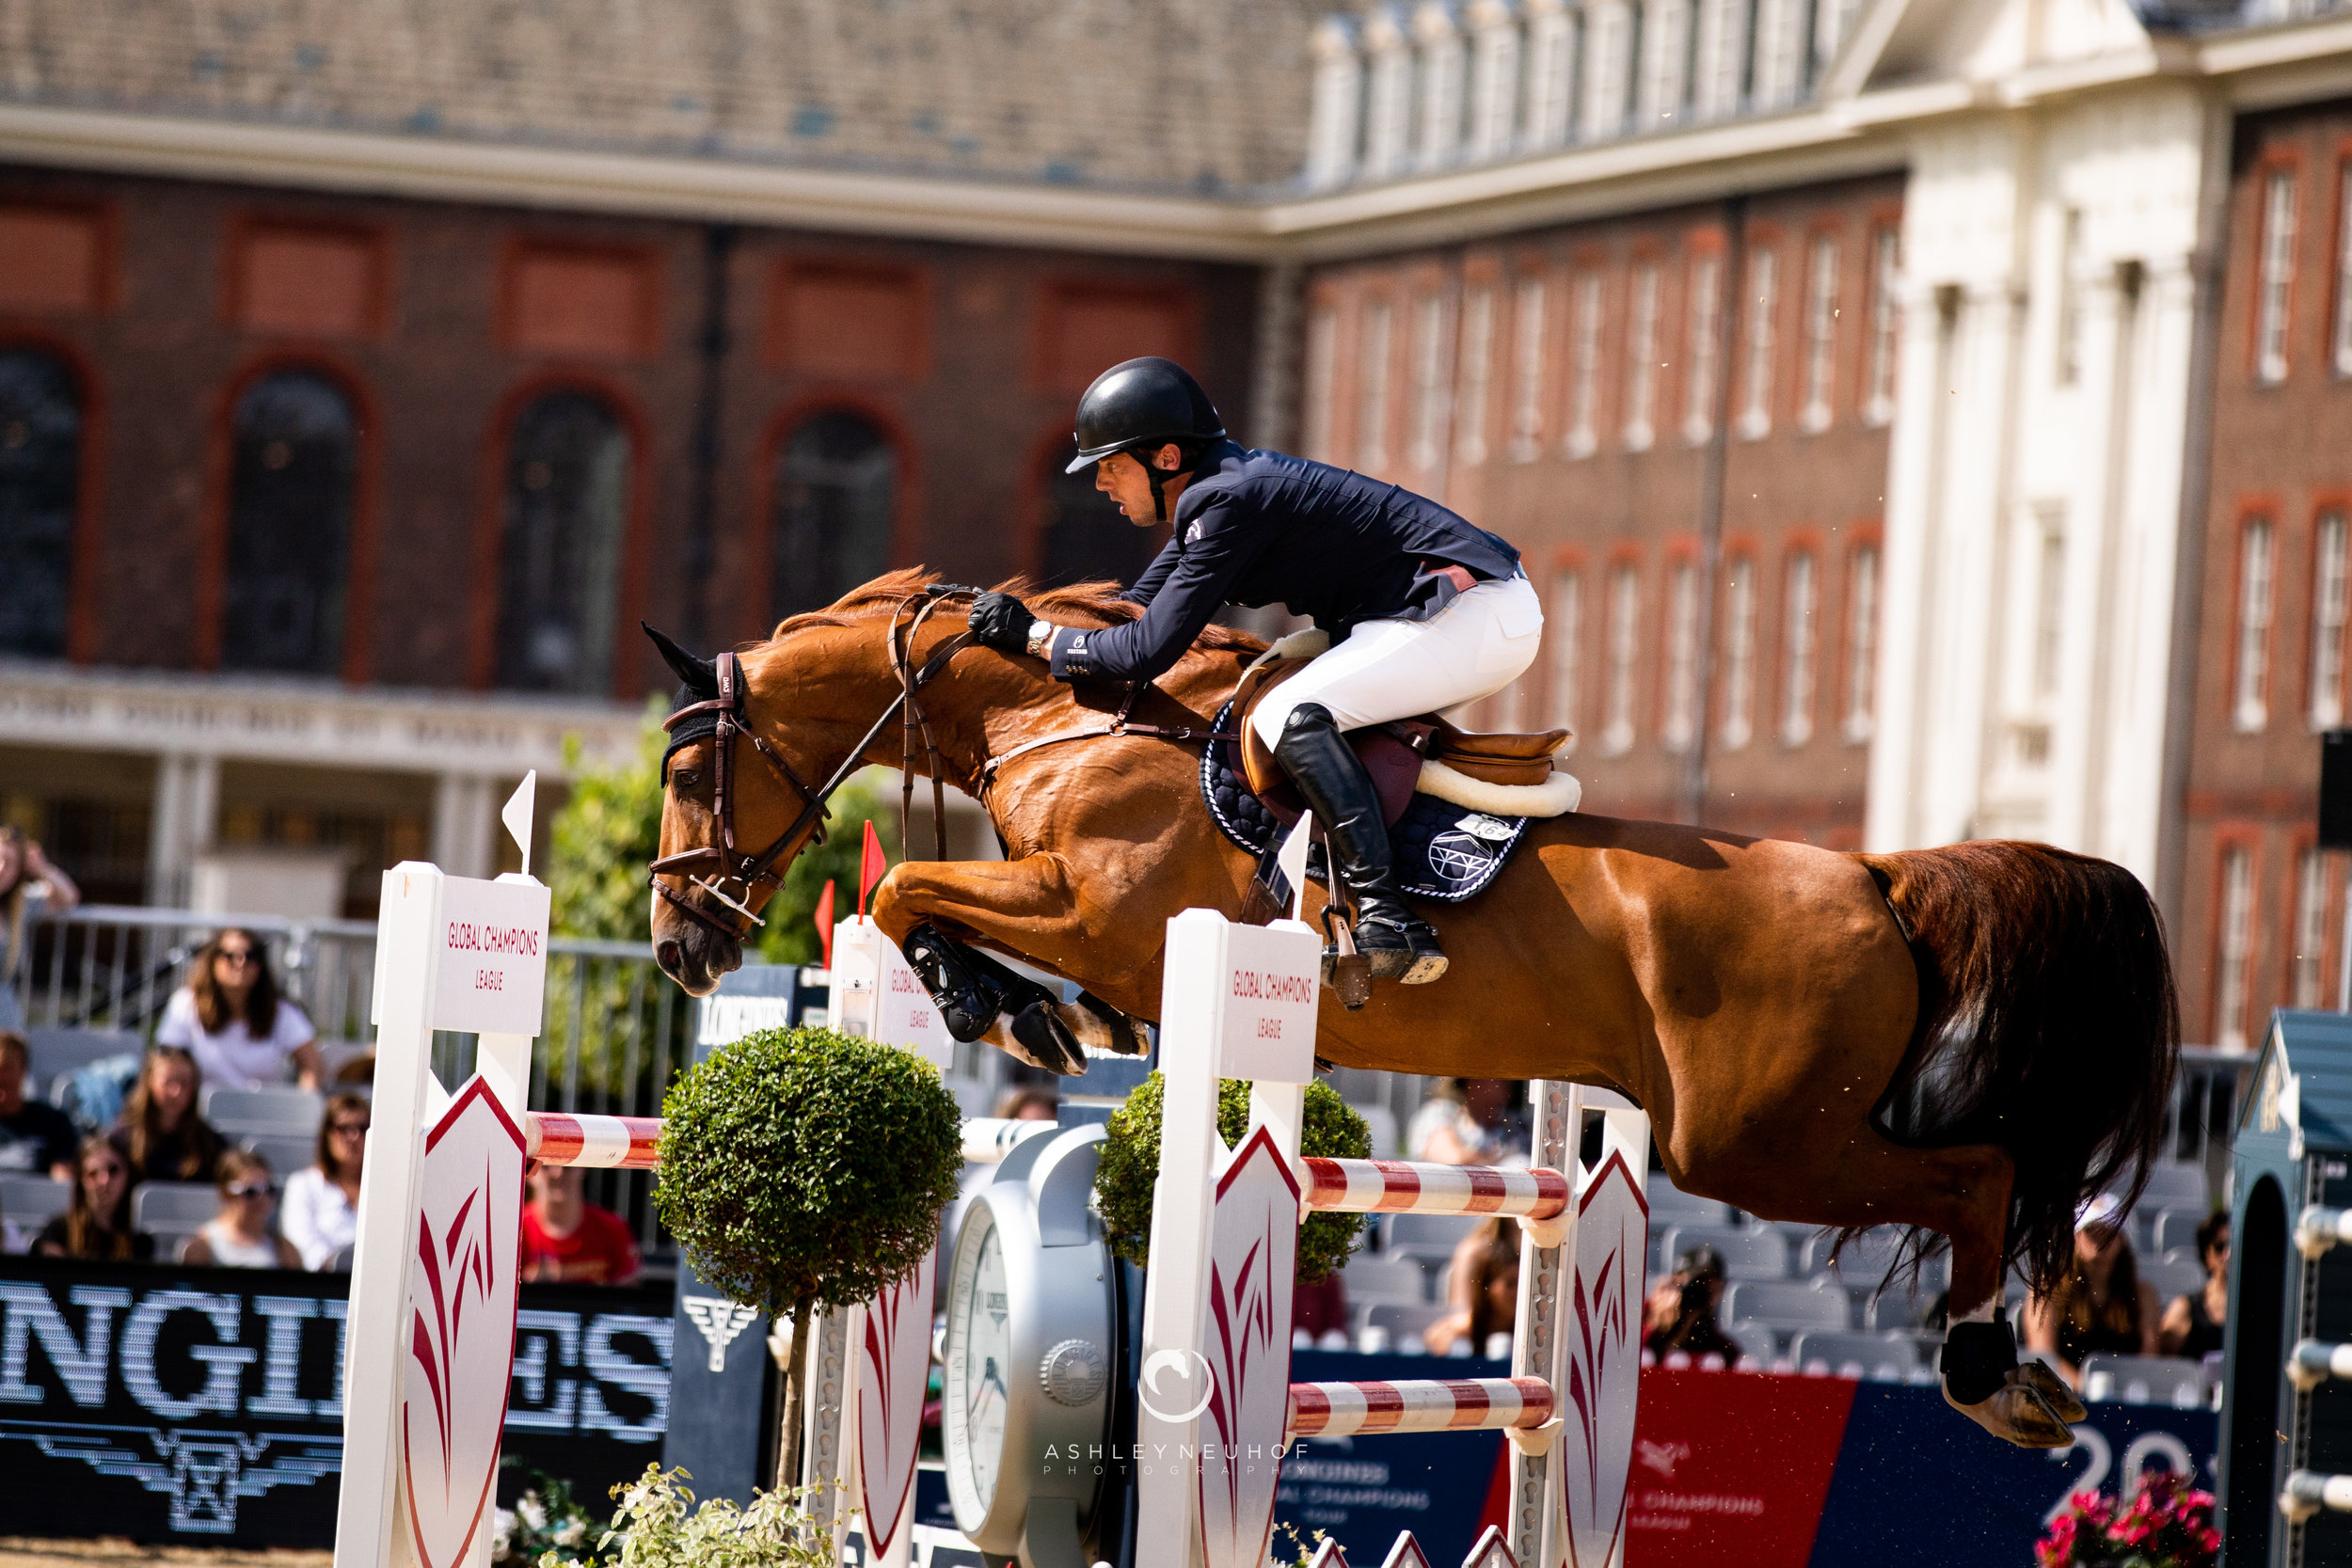 Harrie Smolders and Hocus Pocus de Muze at Longines Global Champions Tour of London 2019. Photo by Ashley Neuhof Photography.